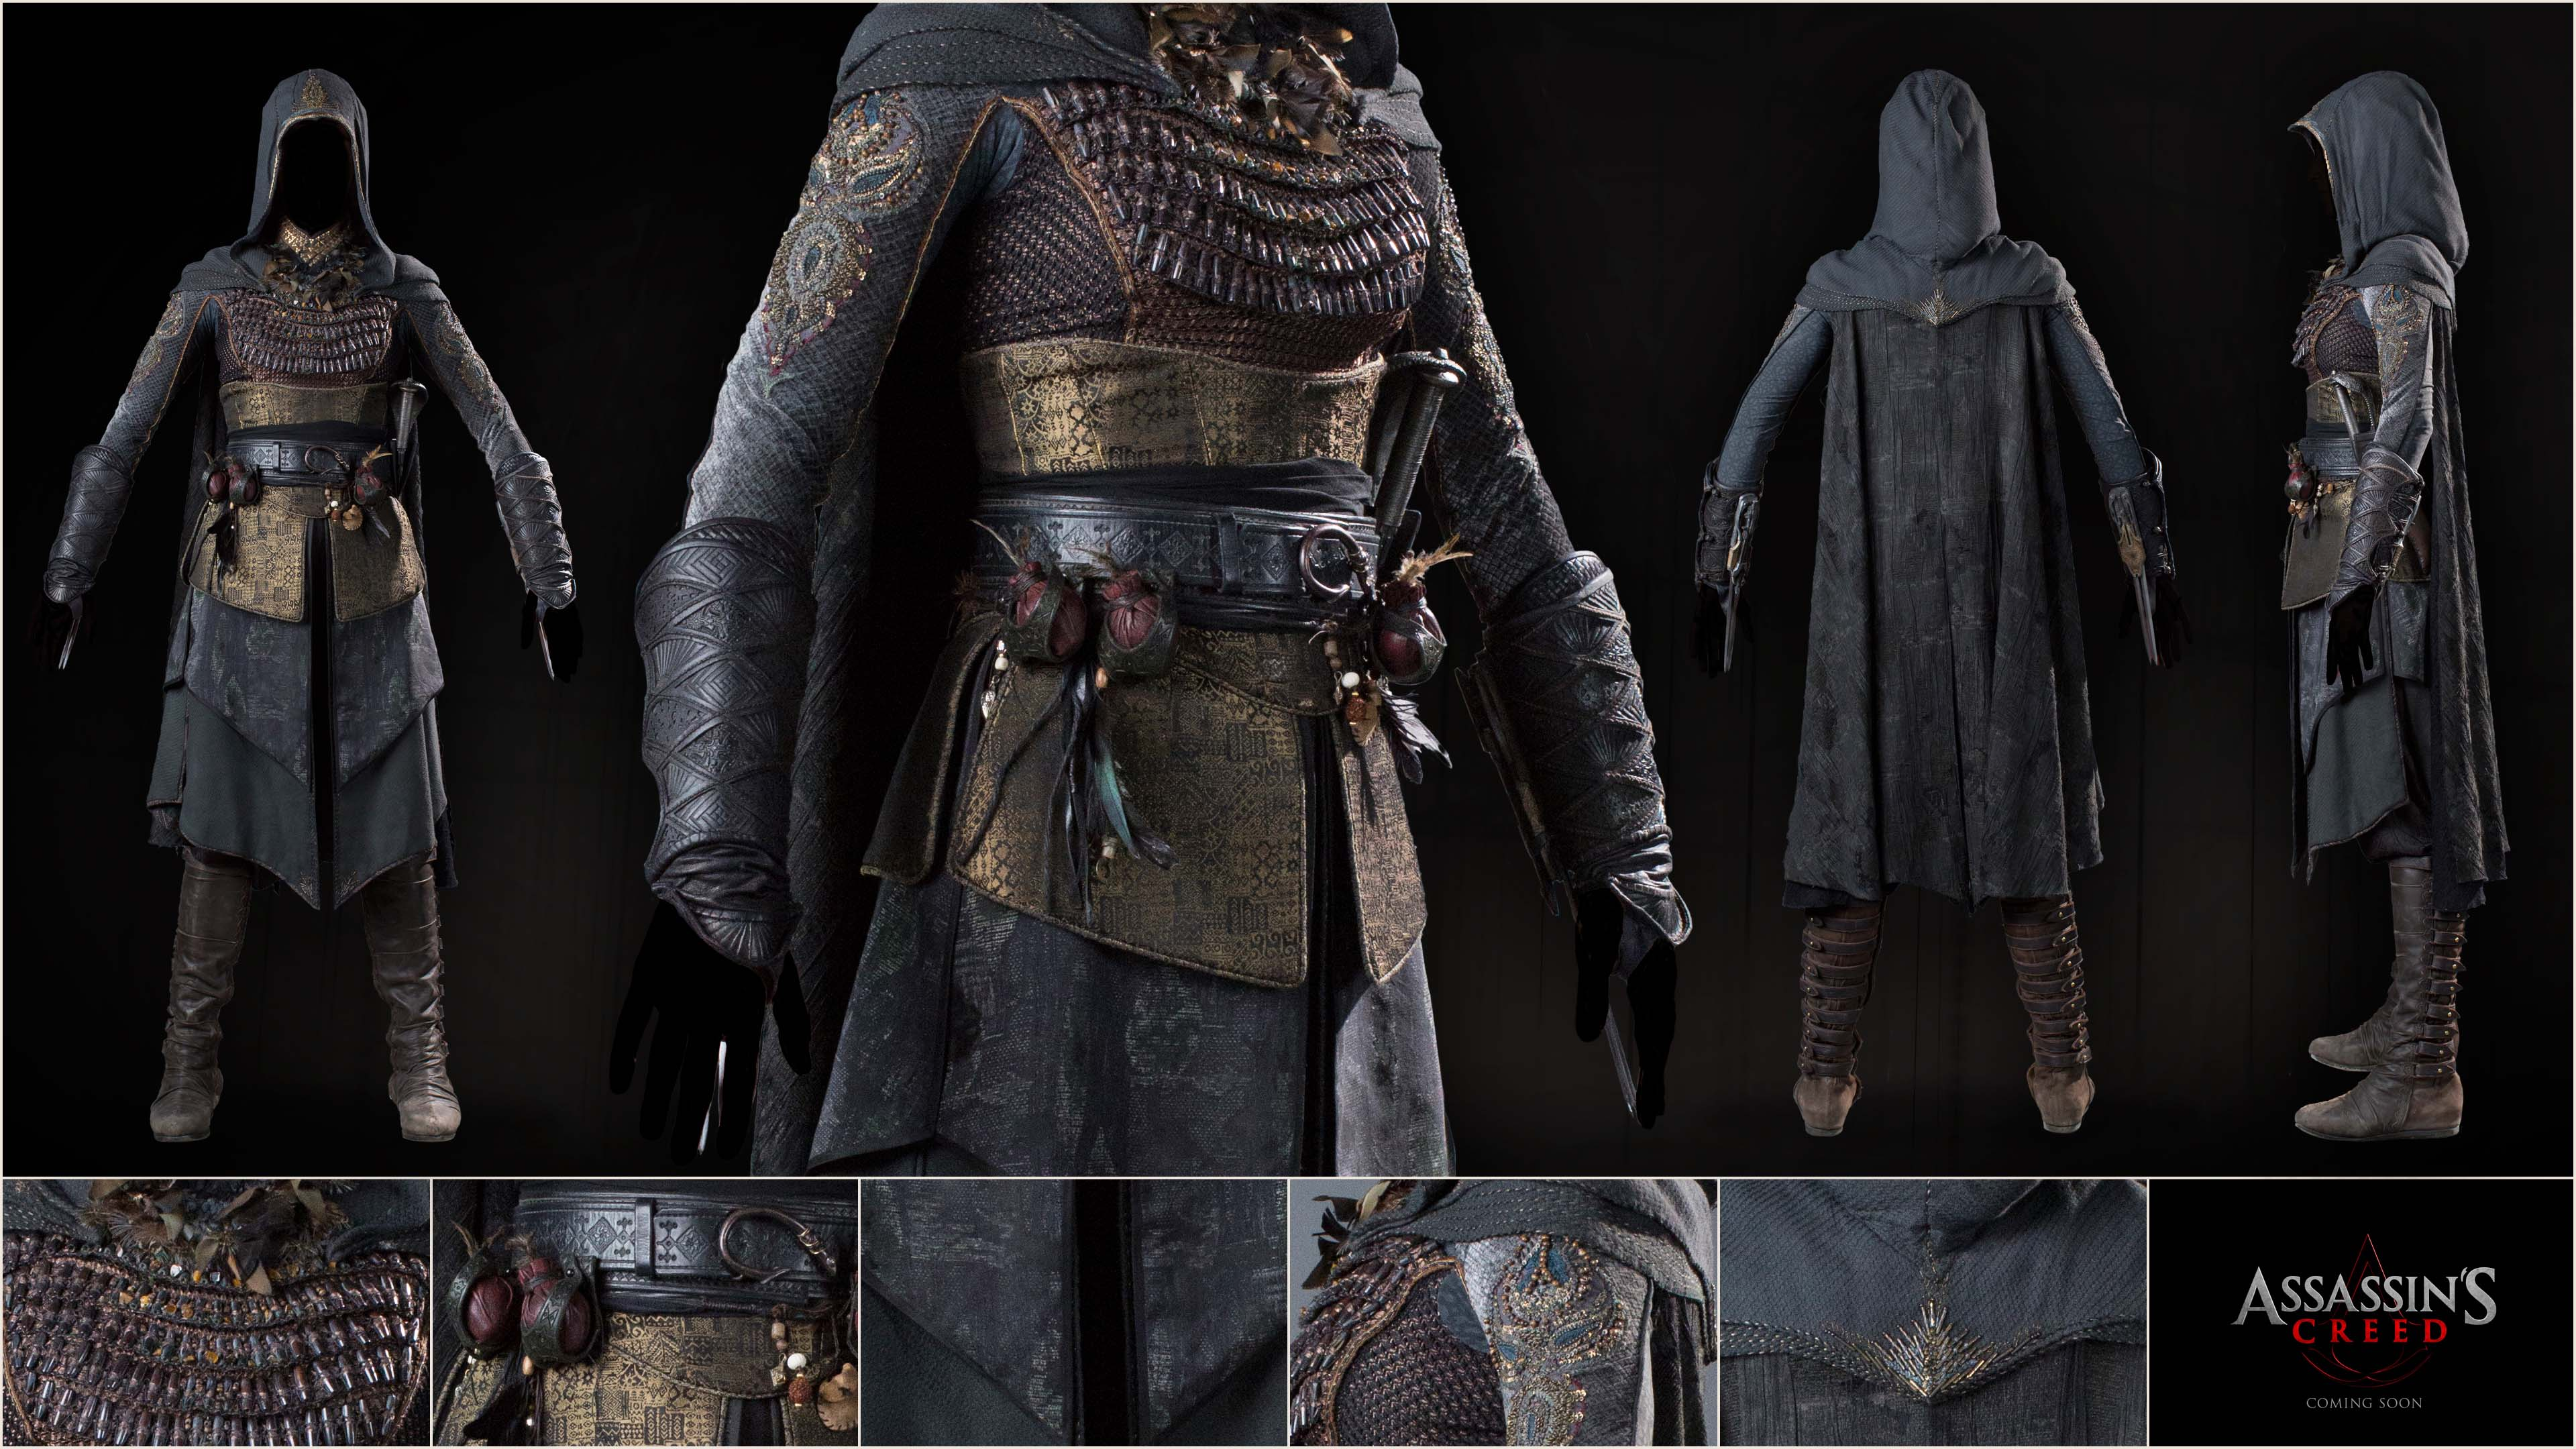 Assassins Creed Movie Close Up With Marias Assassin Costume